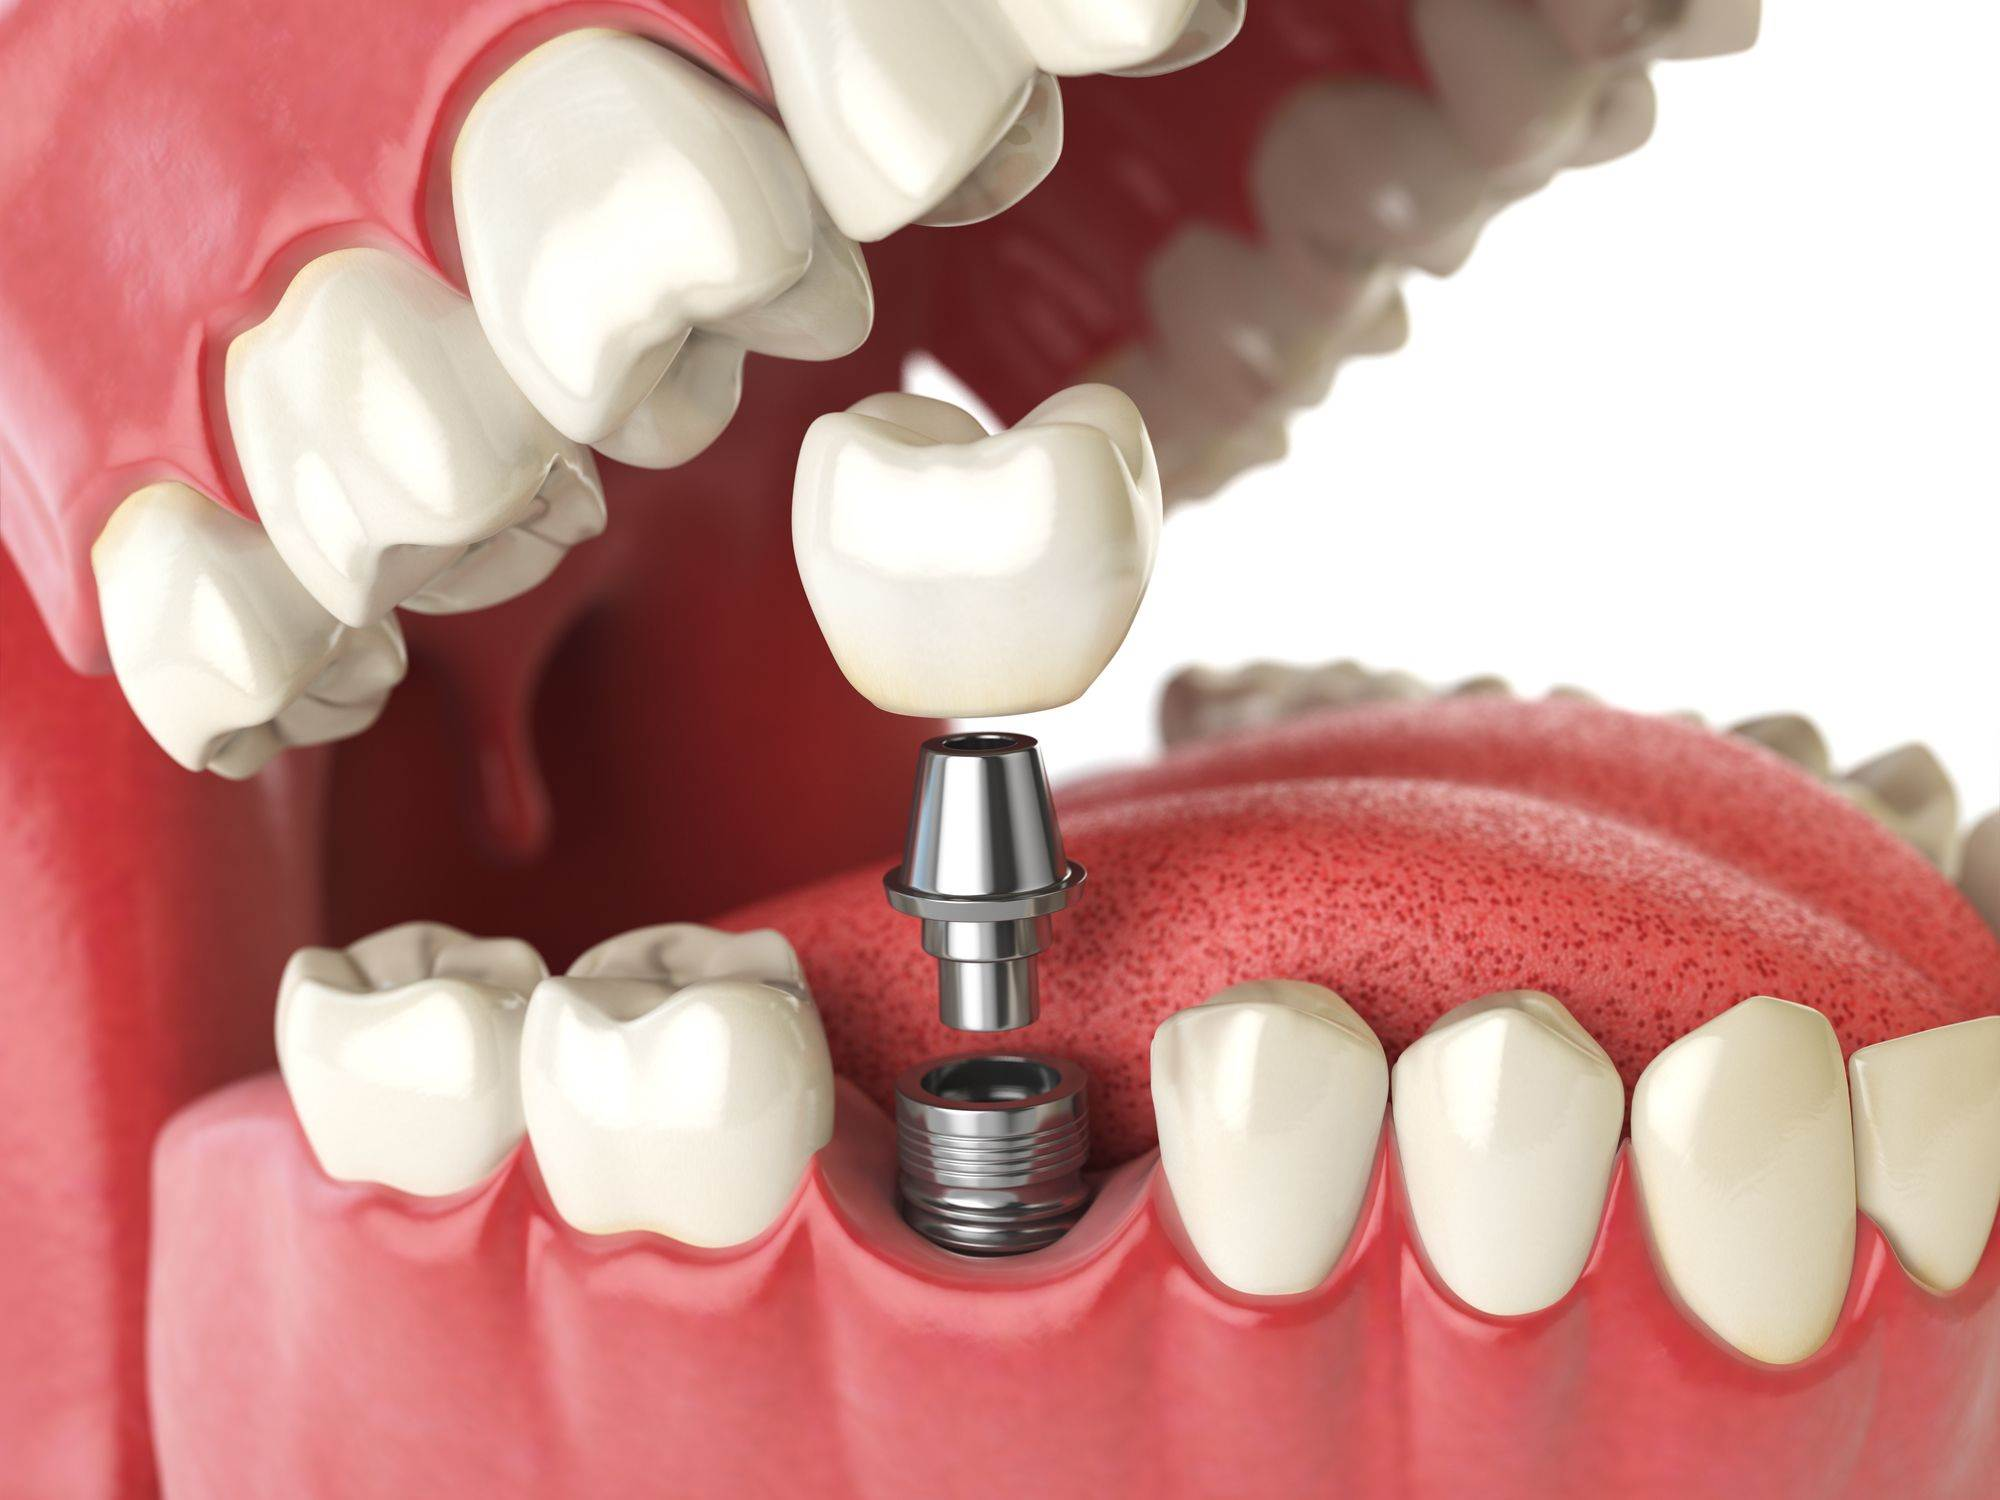 10 MAJOR BENEFITS OF DENTAL IMPLANTS